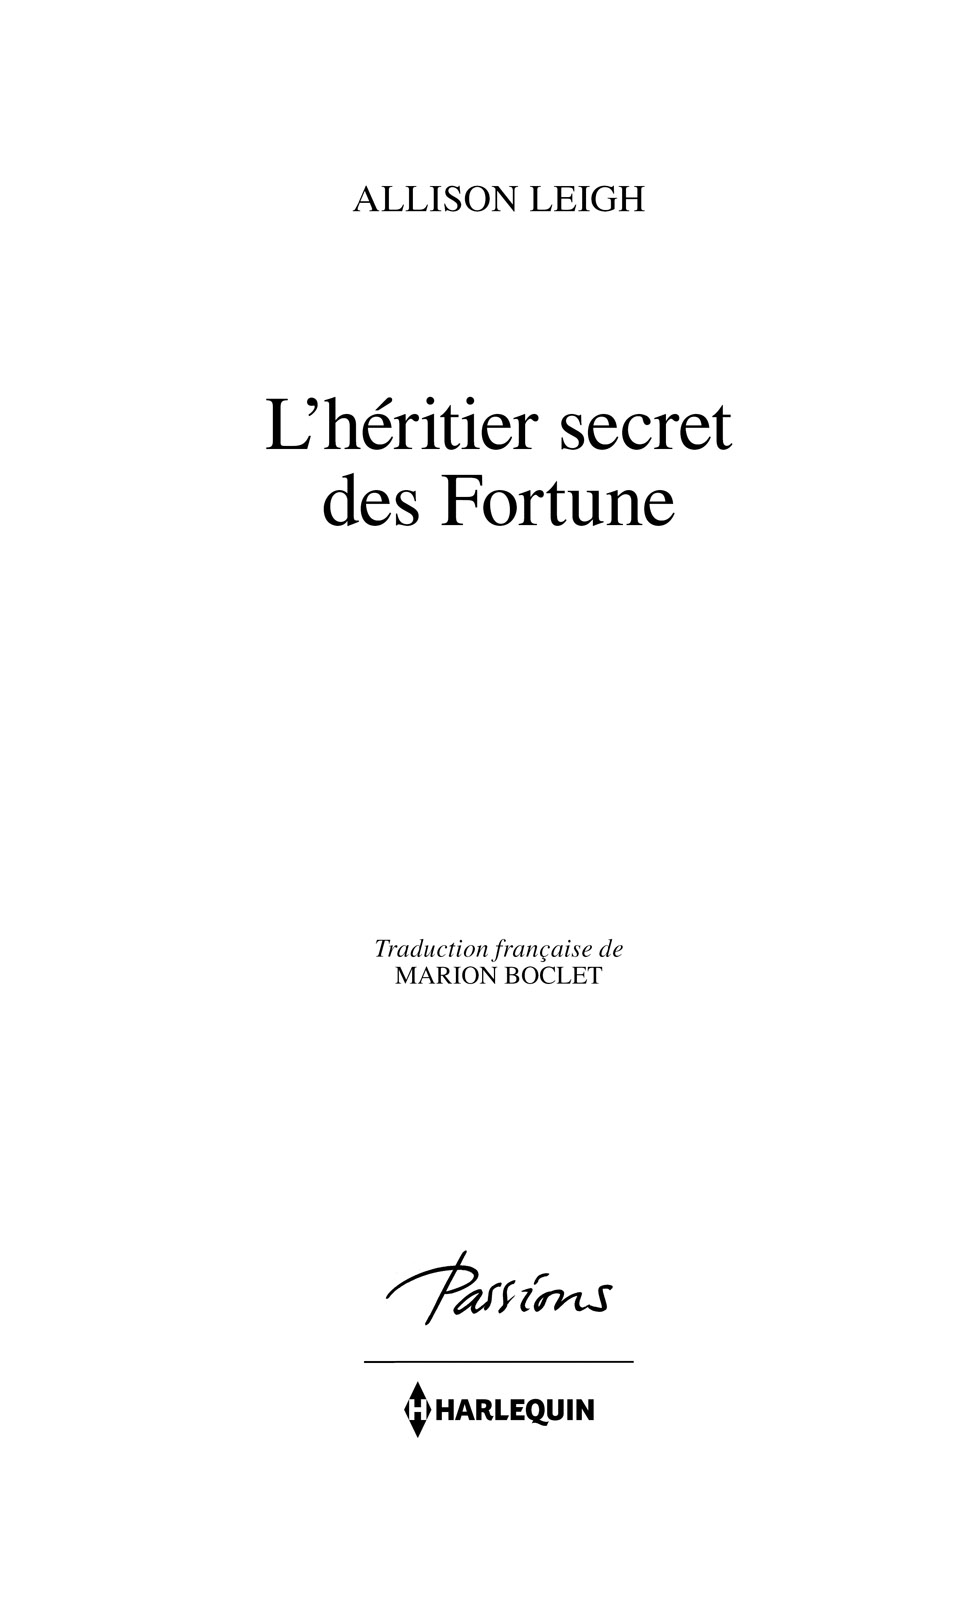 Page de titre : Allison Leigh, L'héritier secret des Fortune, Harlequin